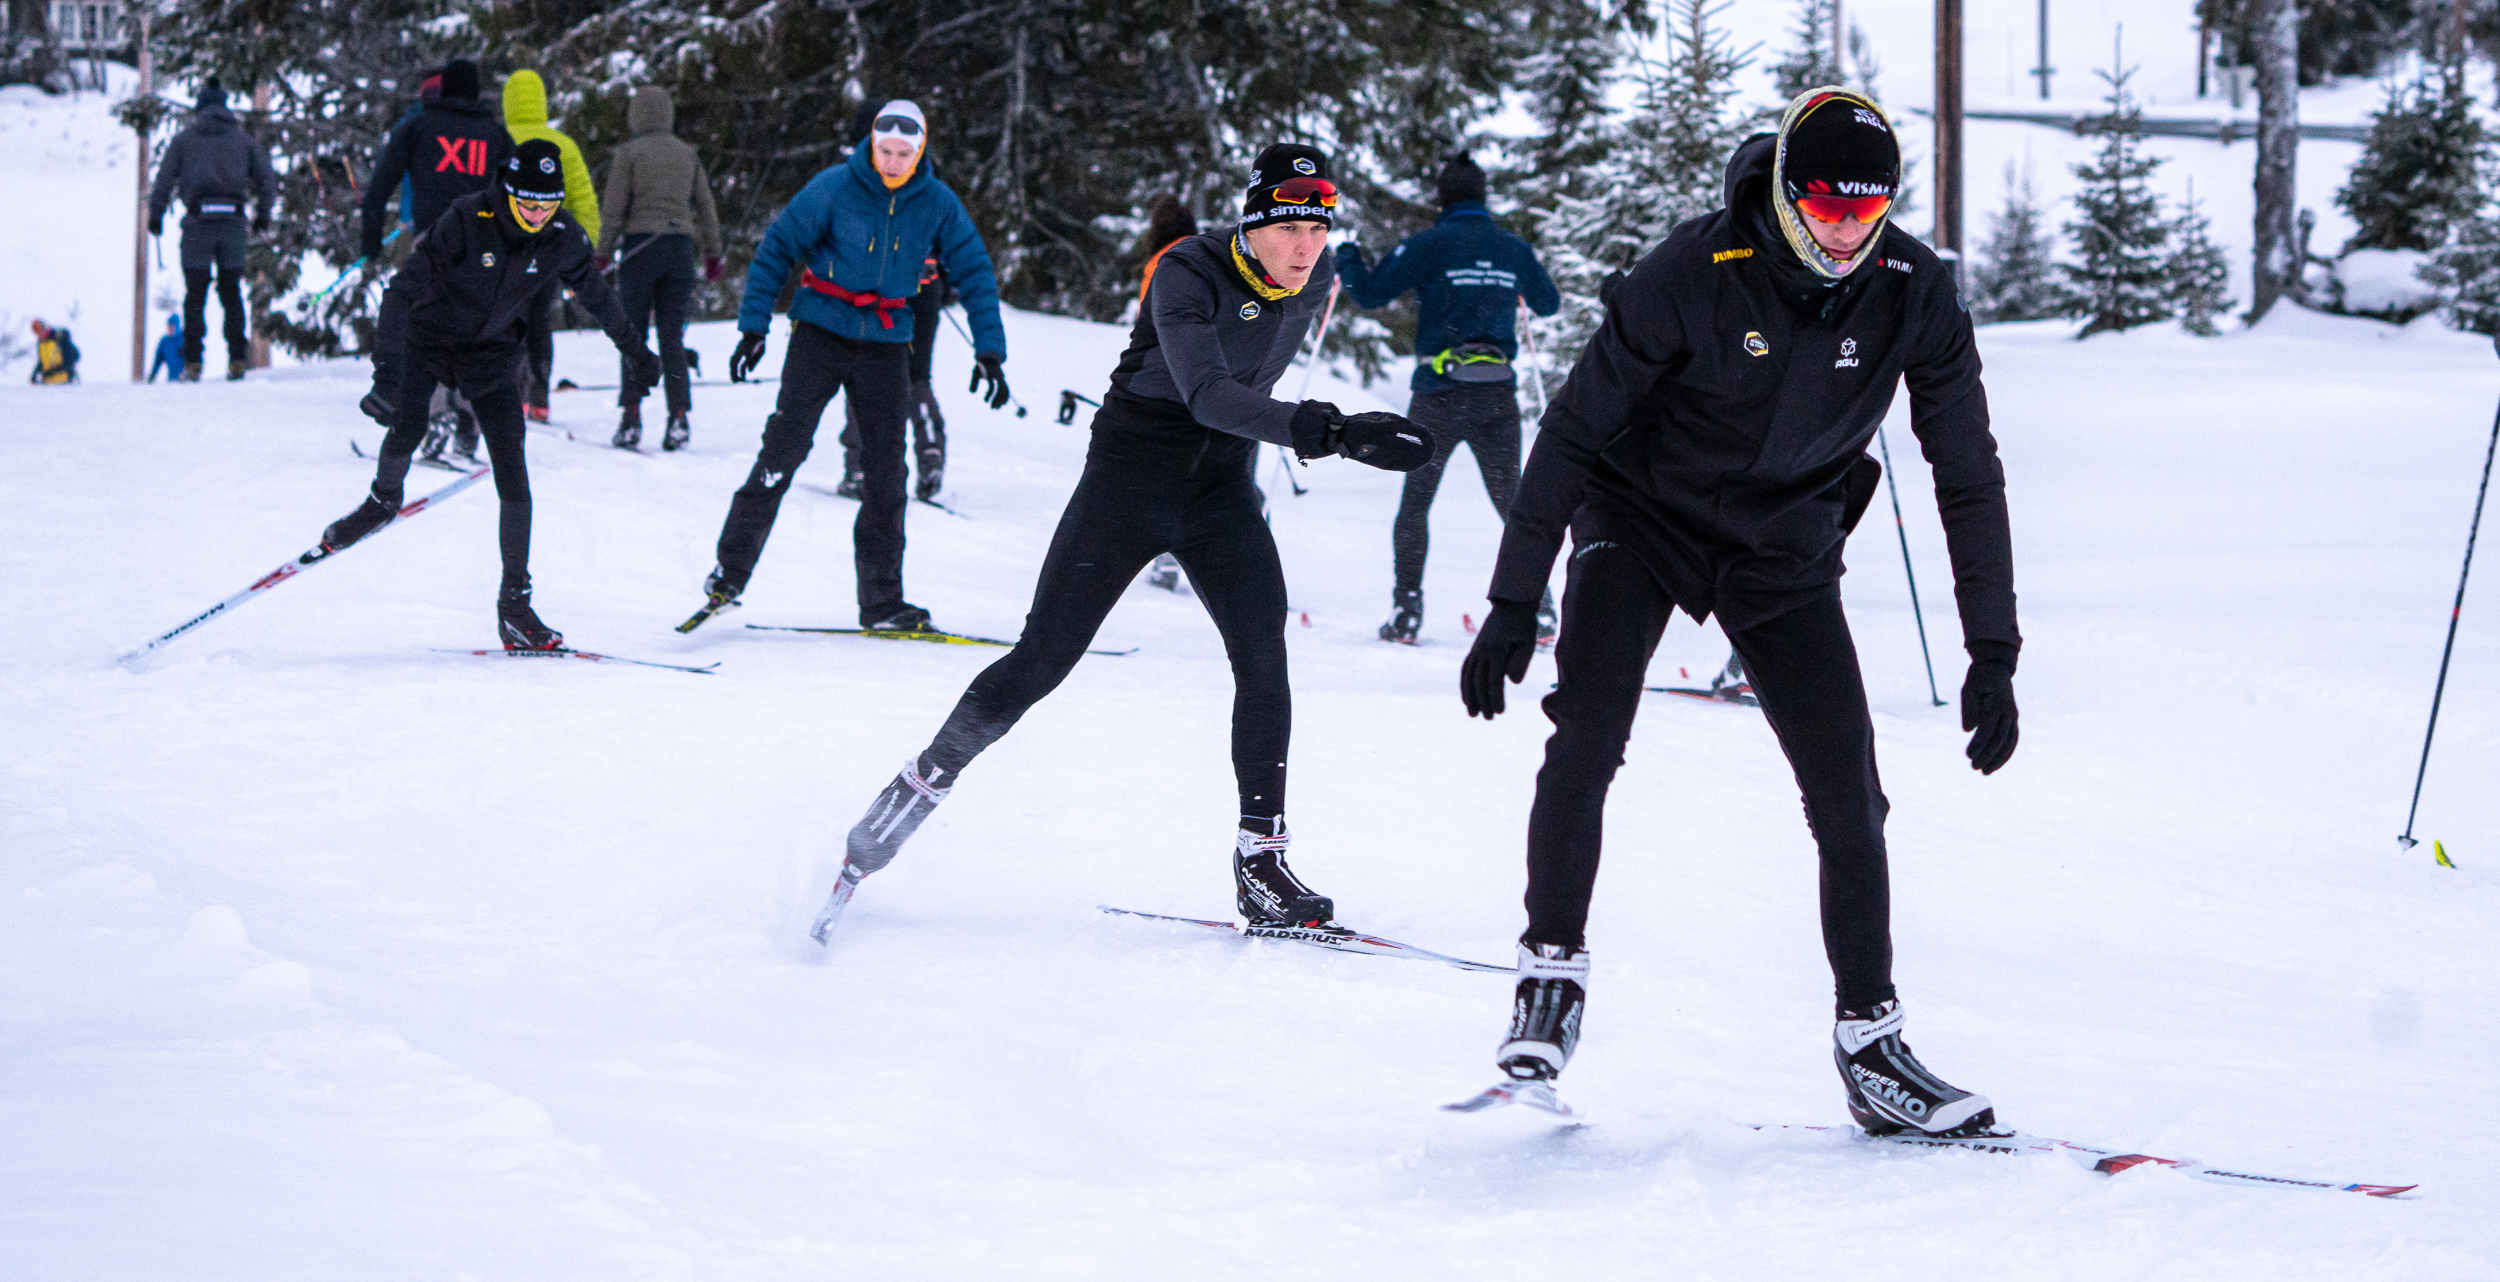 Team Jumbo-Visma's cycling talents try skiing for the first time